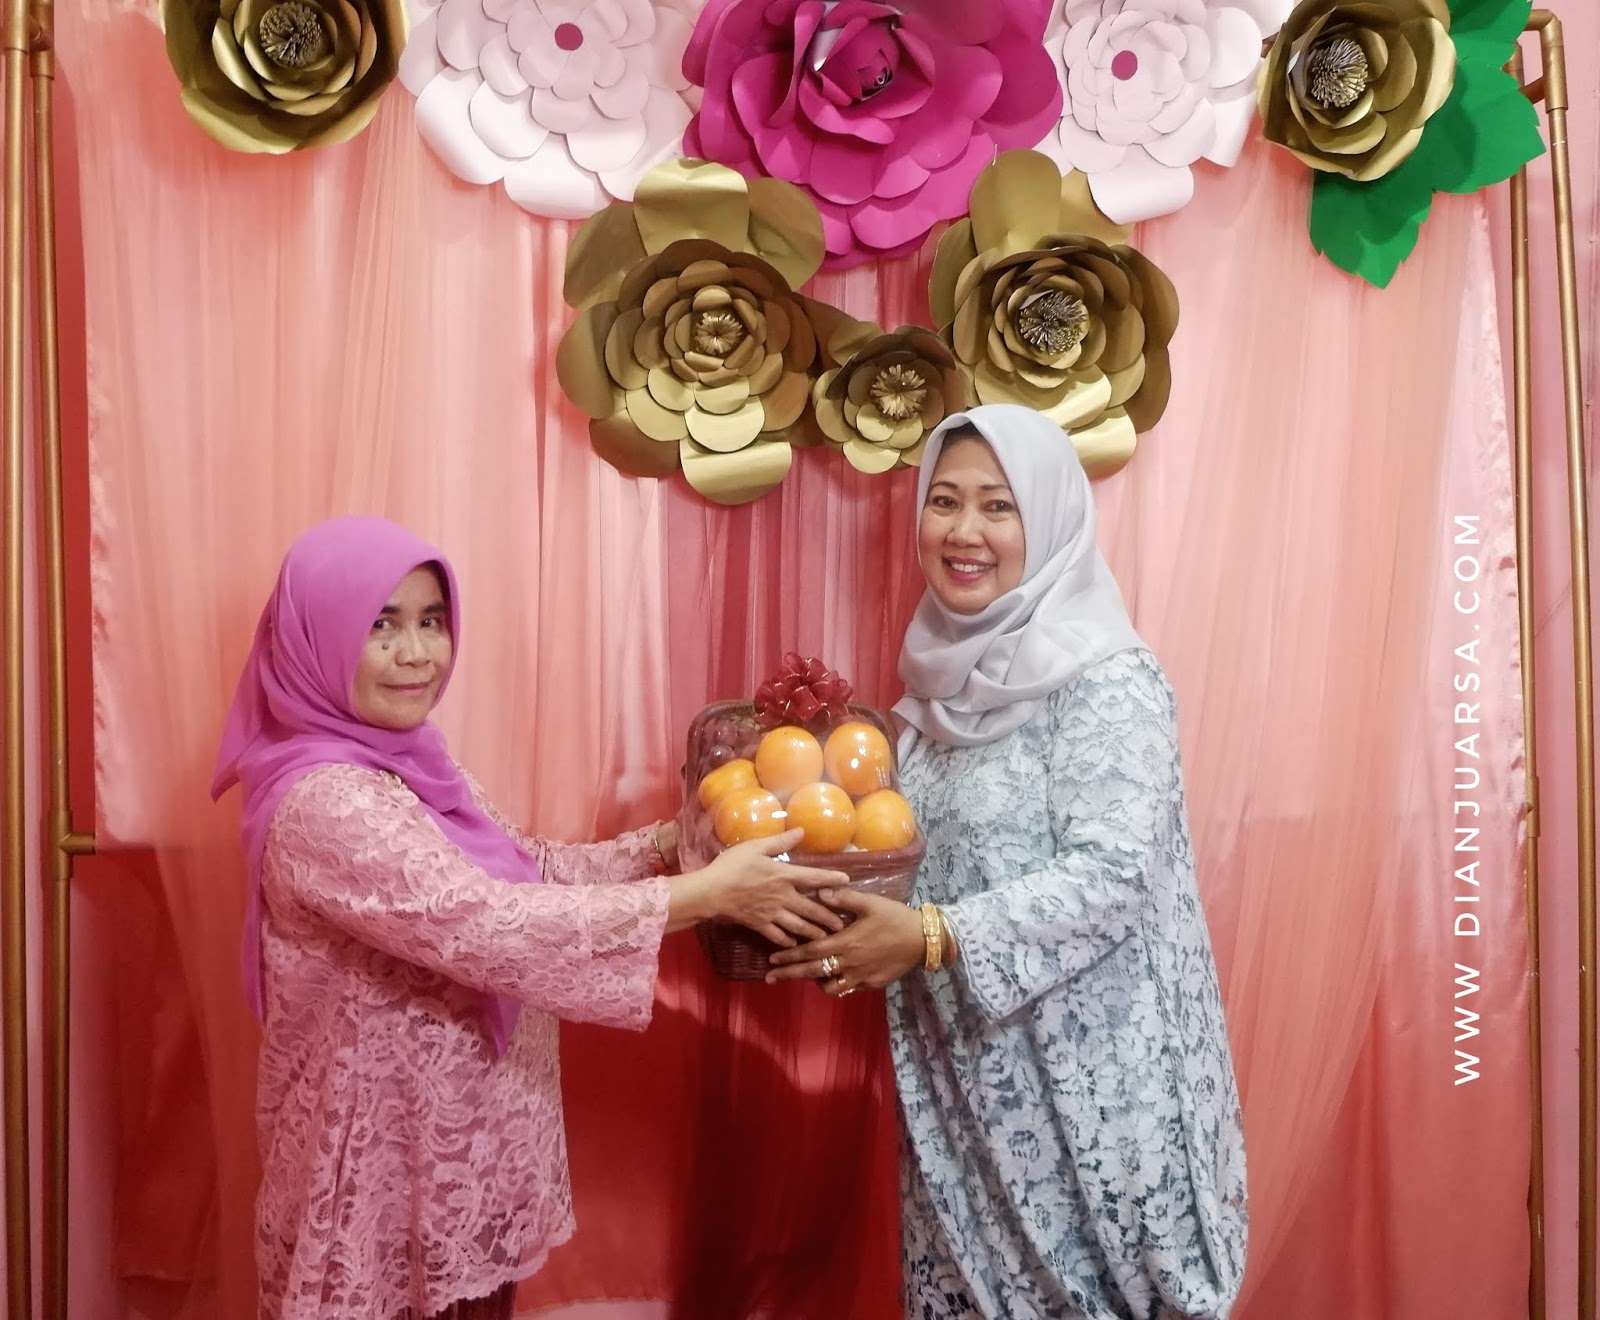 Ide Kreatif Membuat Backdrop Photo Booth Untold Story